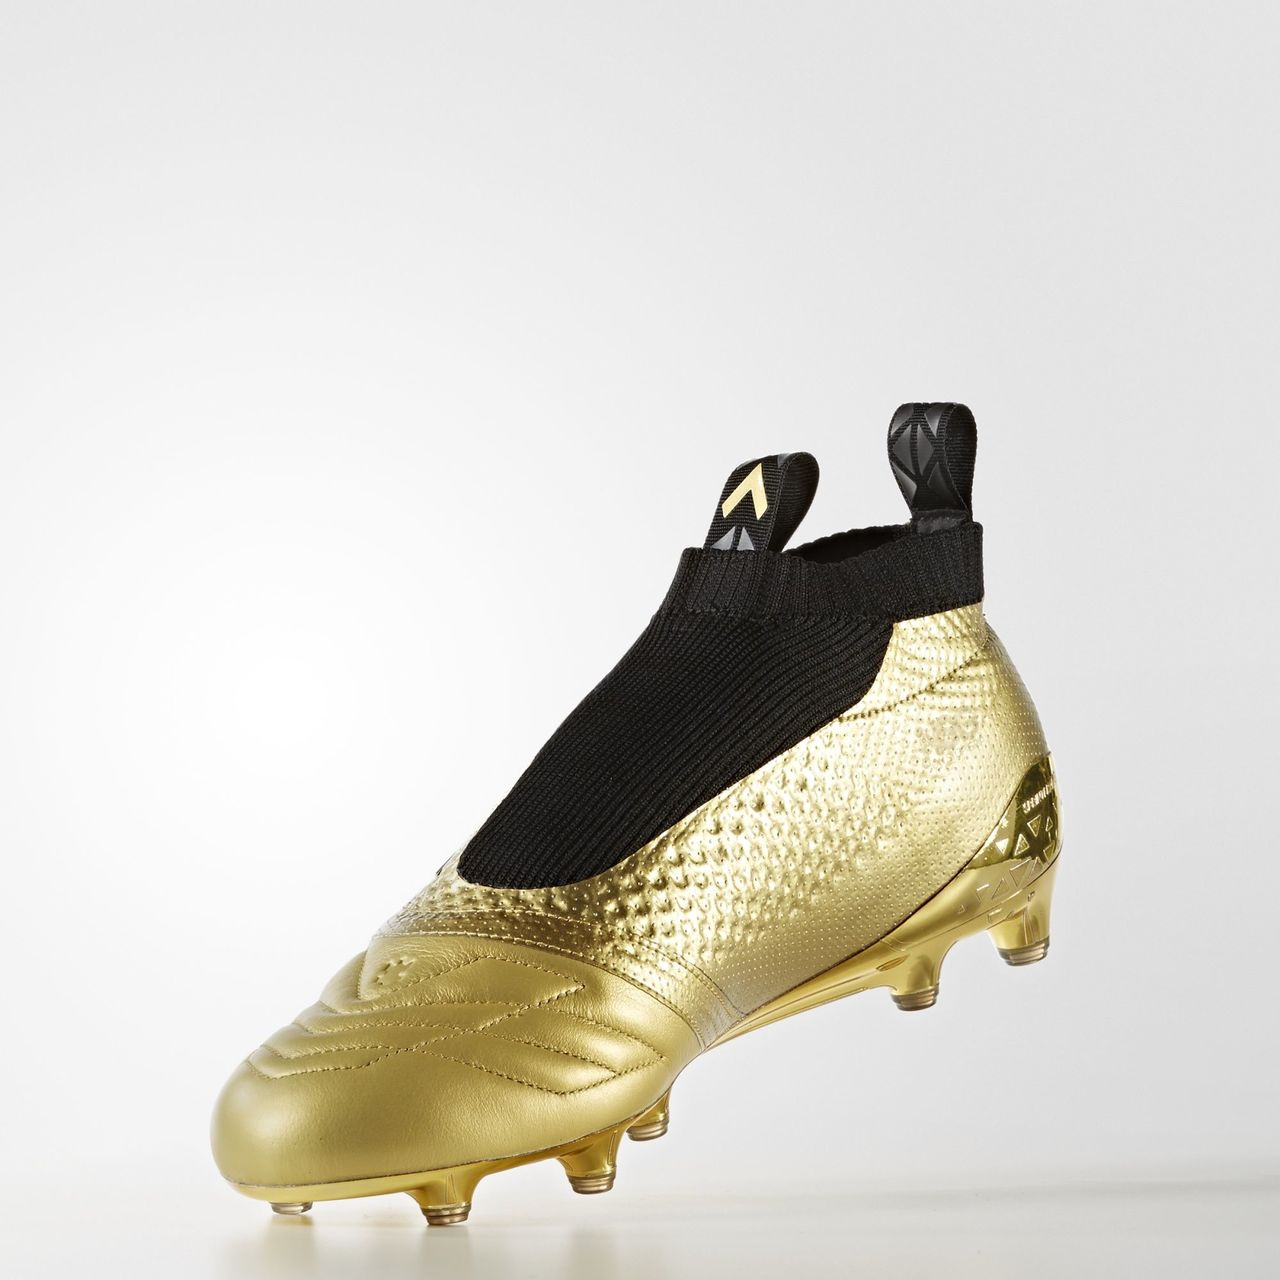 7a7e5eb8 ... Click to enlarge image  adidas_ace_16_purecontrol_fg_ag_space_craft_pack_gold_metallic_d.jpg ...